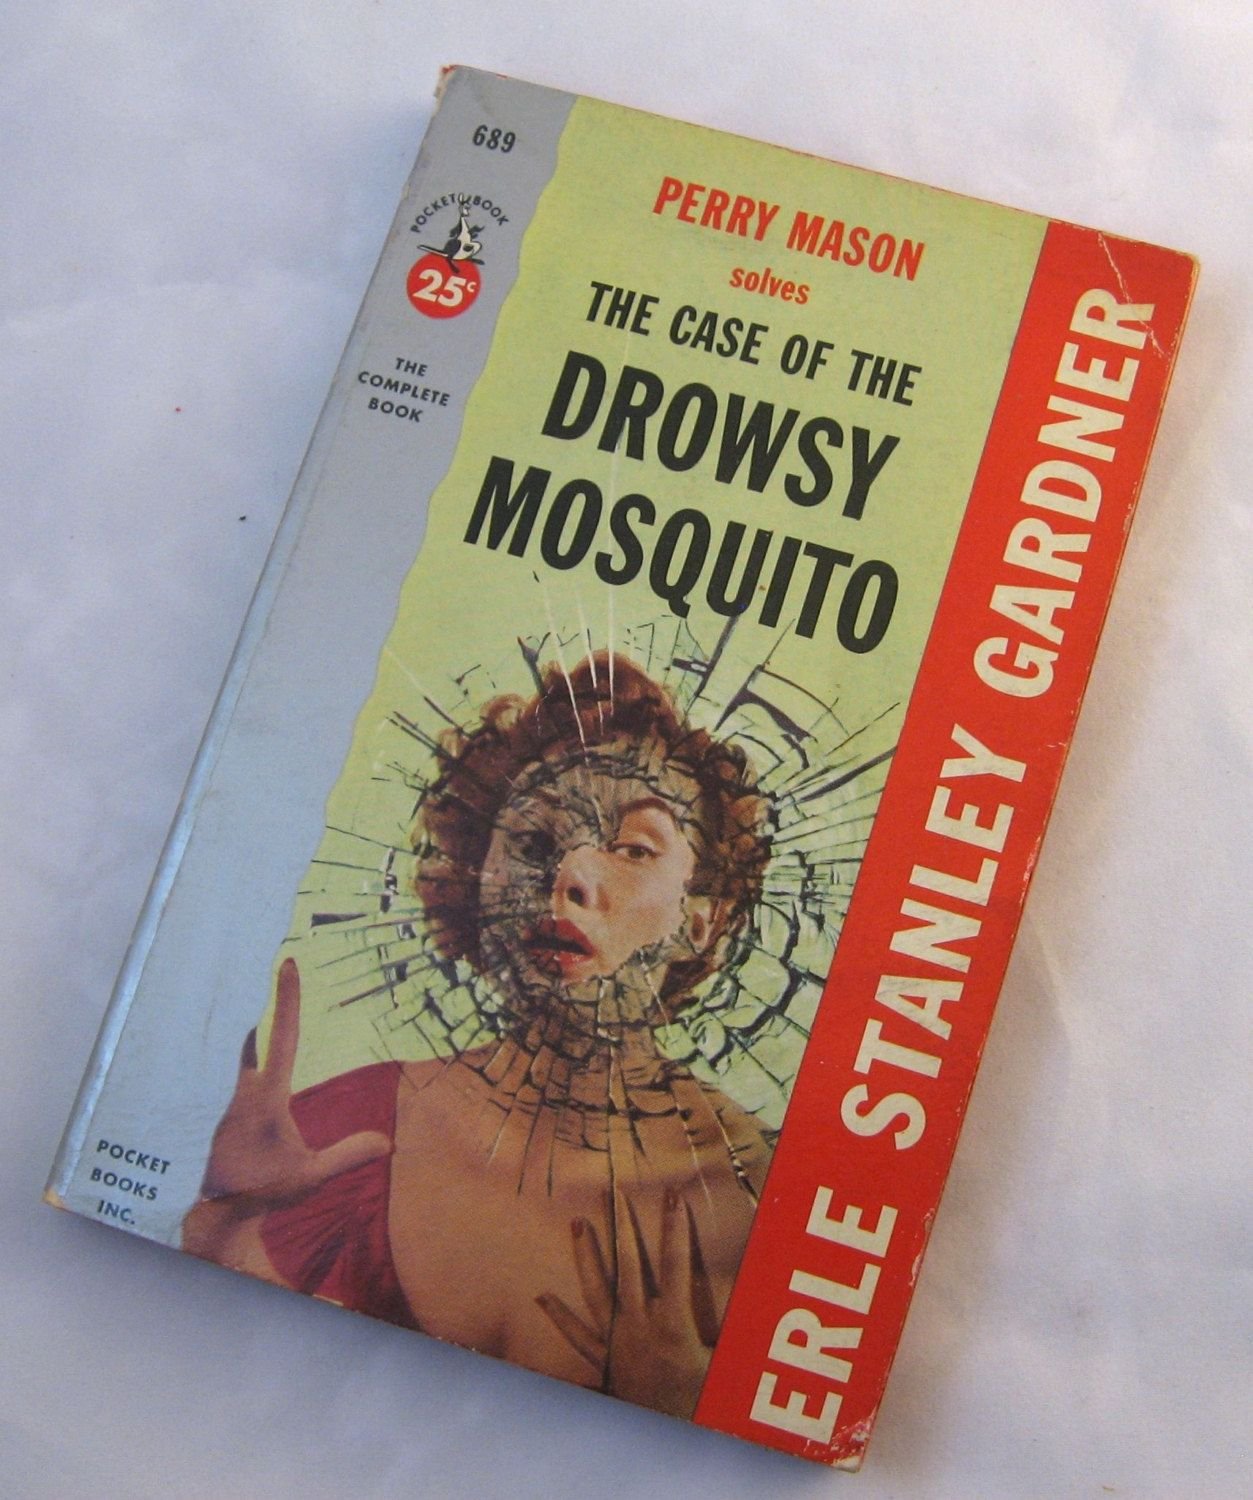 Perry Mason Libros Perry Mason Solves The Case Of The Drowsy Mosquito. By